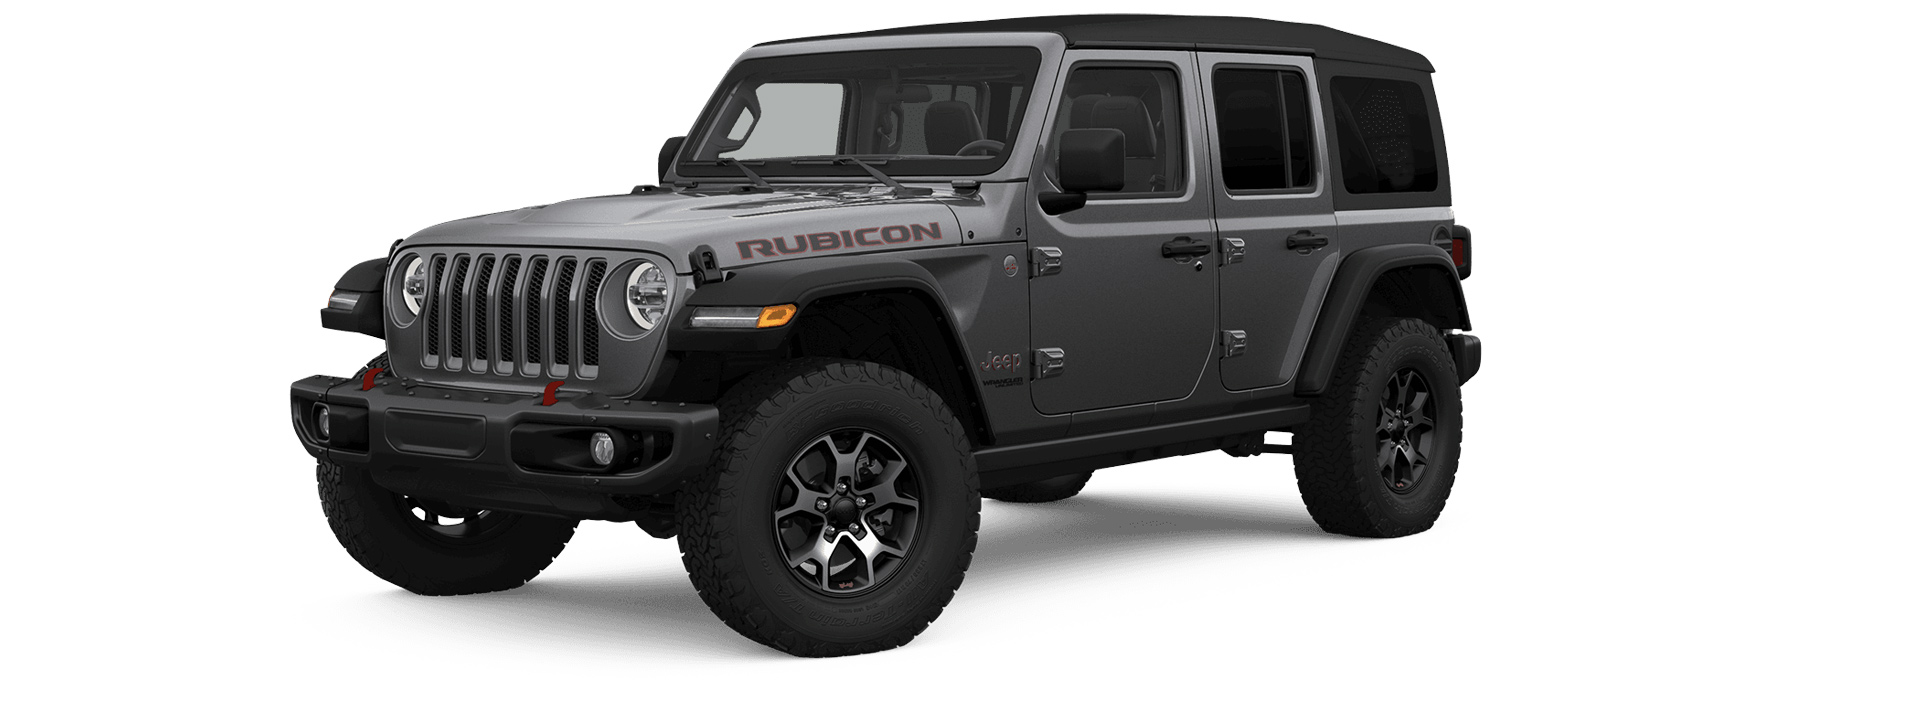 New Jeep Wrangler for Sale In Warrenton